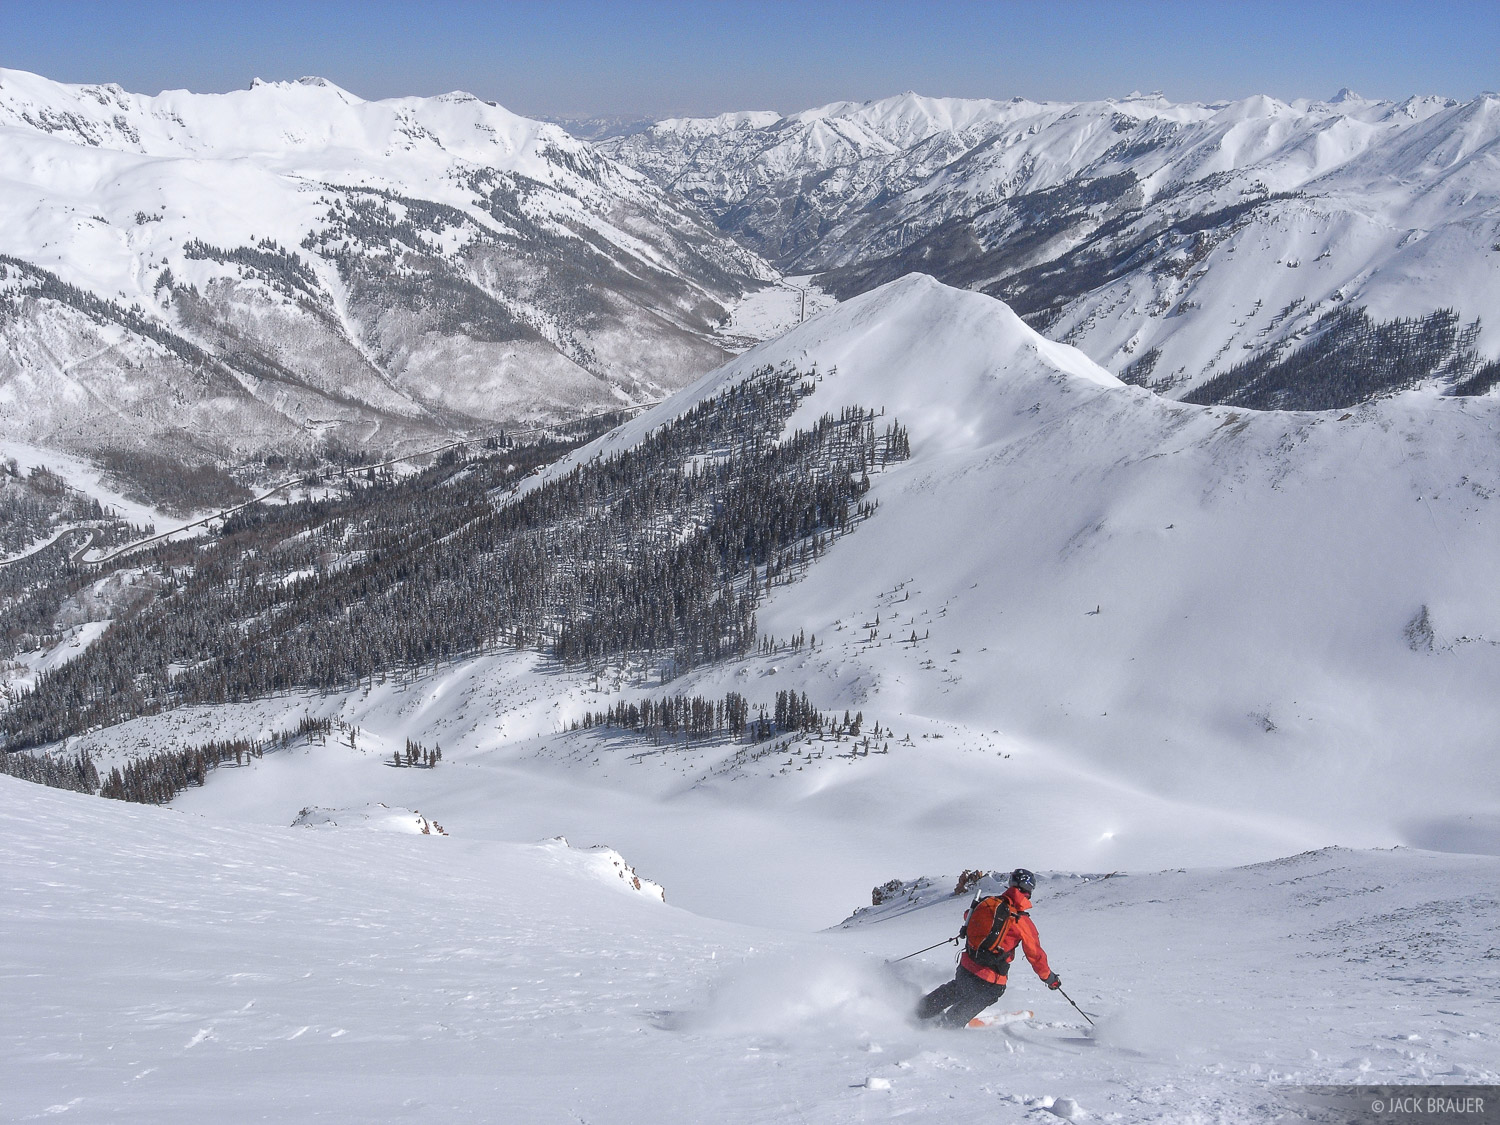 Skiing down the premier north face descent of a prominent 13er in the San Juans near Ouray - March. Skiier: Ann Driggers.